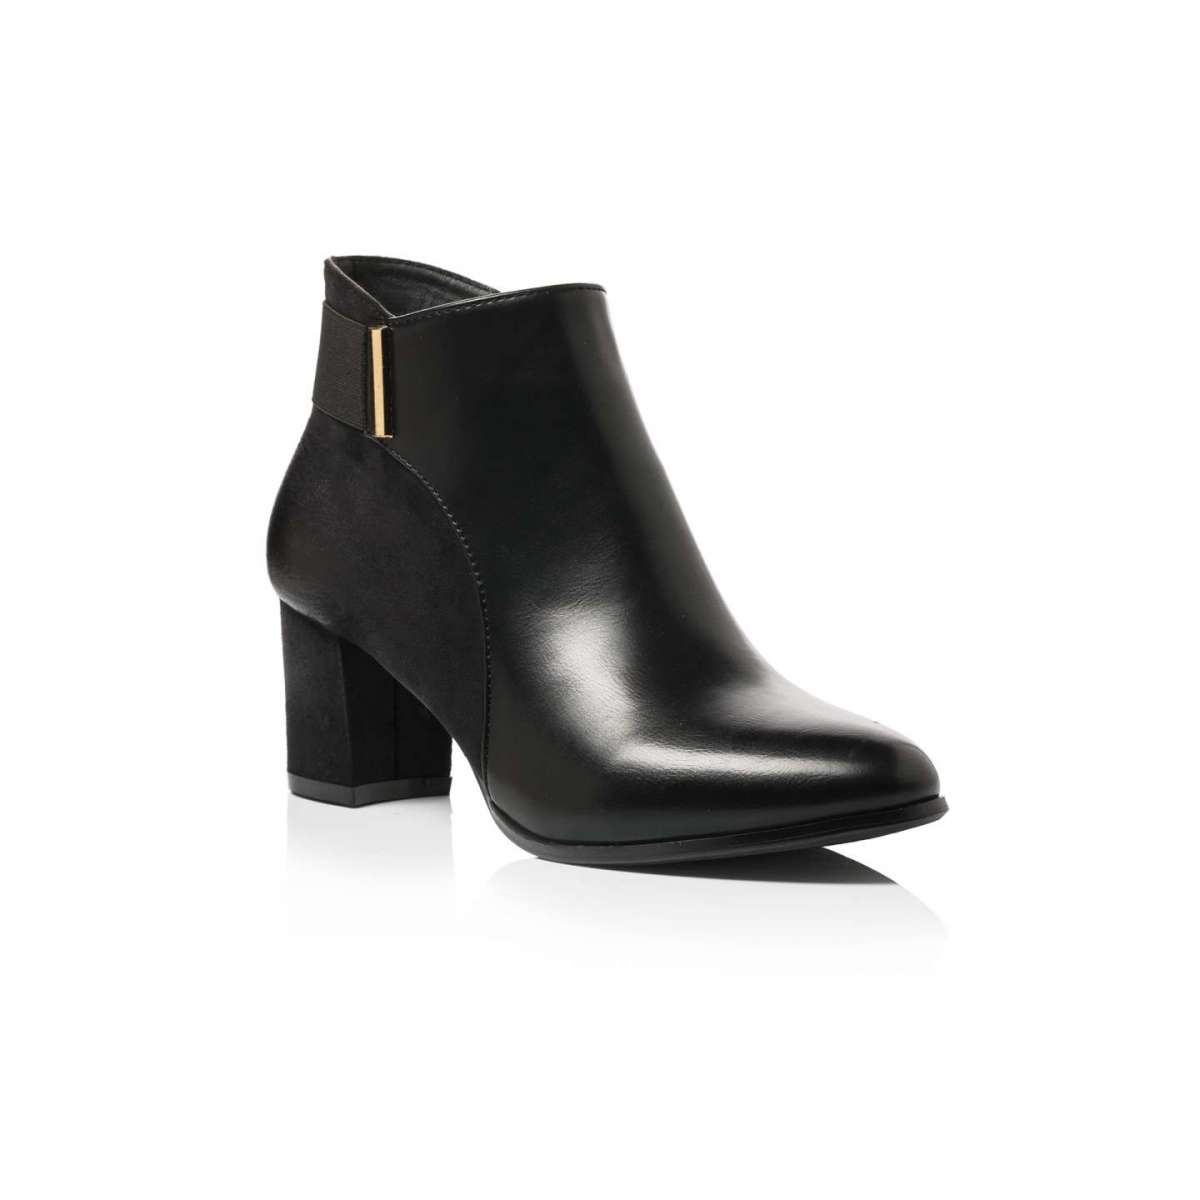 Ankle Boot A Punta Pittarosso Autunno Inverno 2017